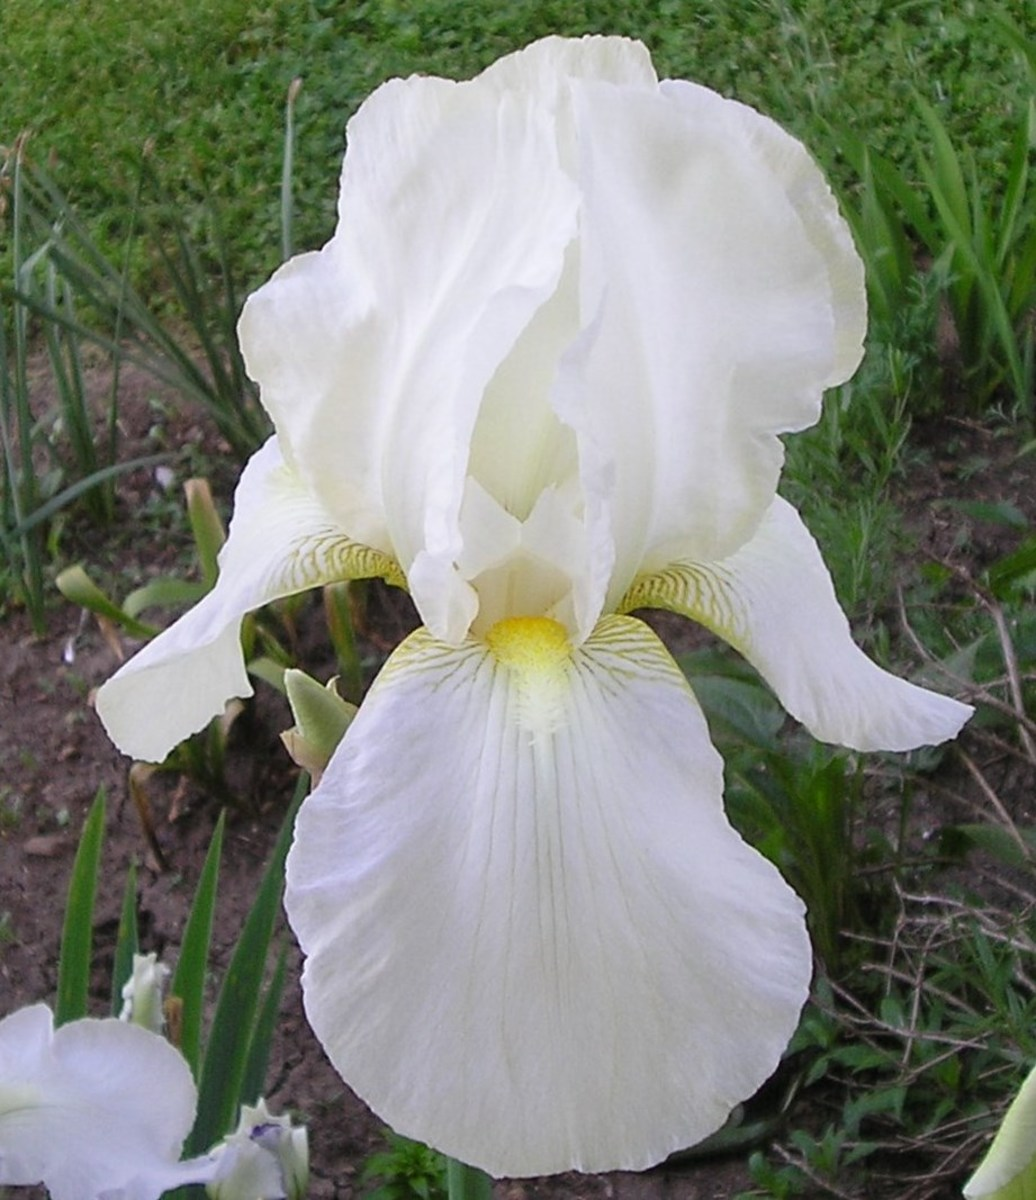 Irises like this one are the result of careful hybridization and selection. Only the best cultivars are registered and bred for commercial distribution.